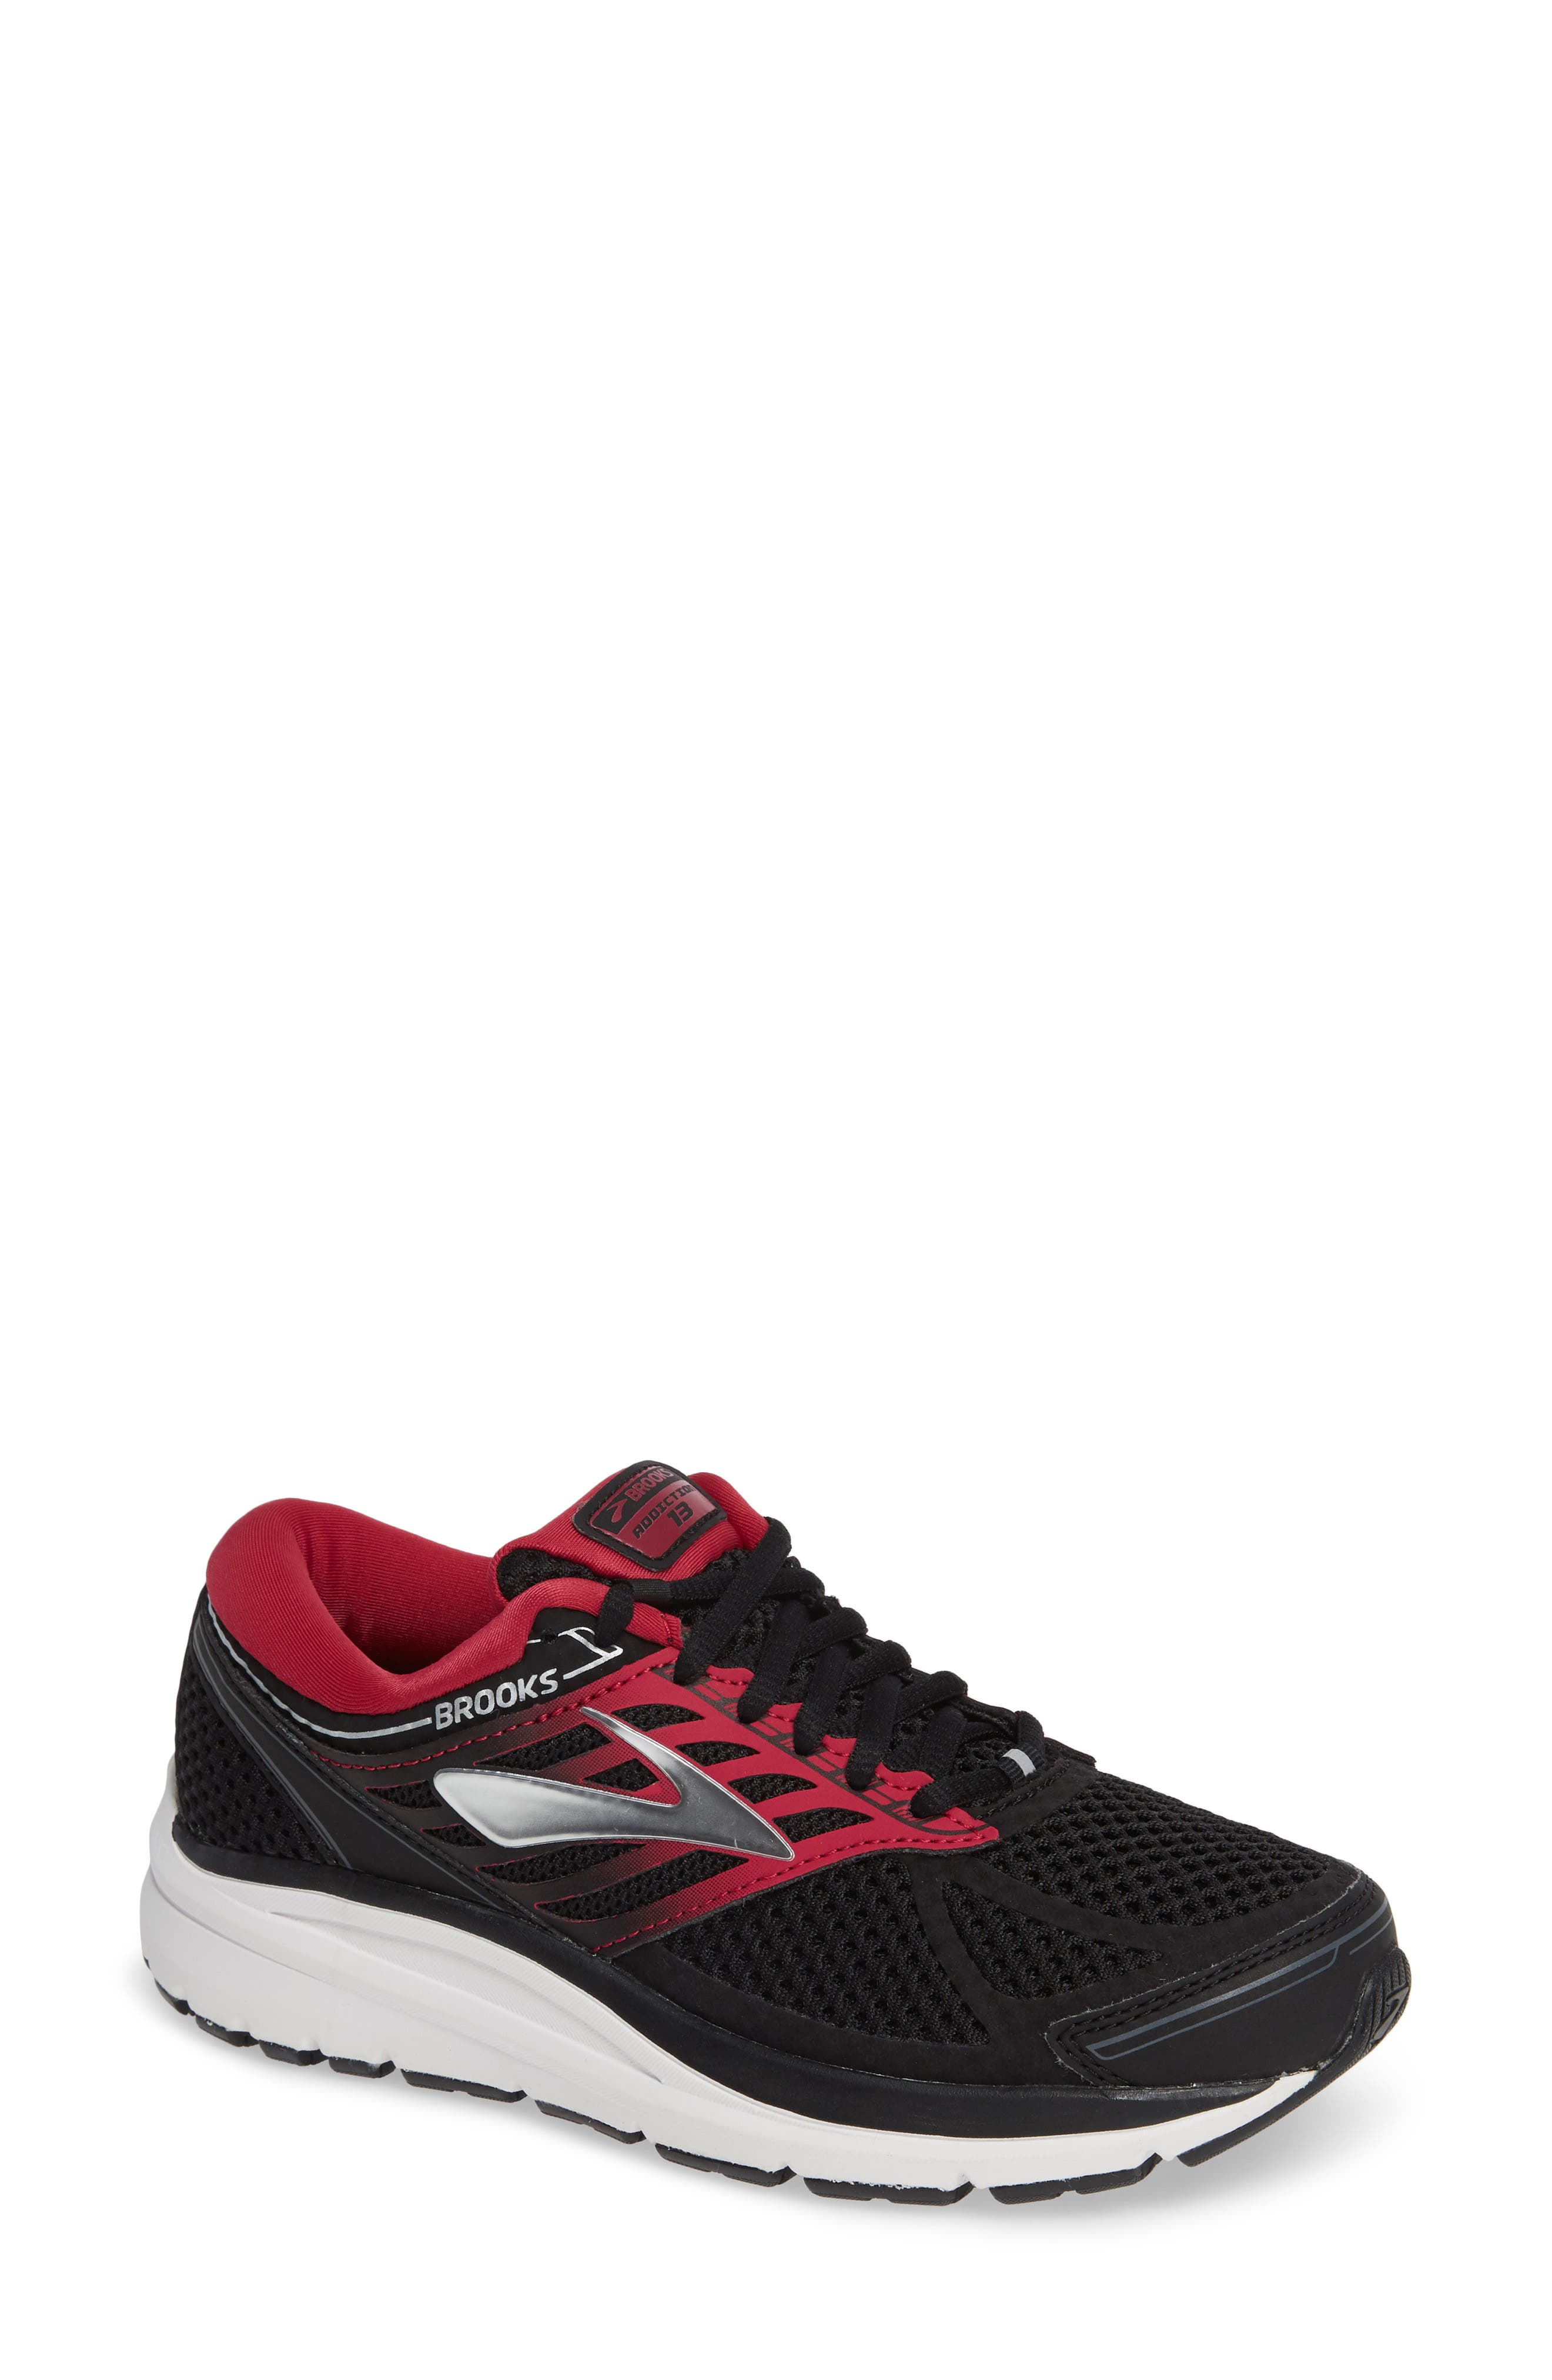 Addiction 13 Running Shoe,                         Main,                         color, BLACK/ PINK/ GREY